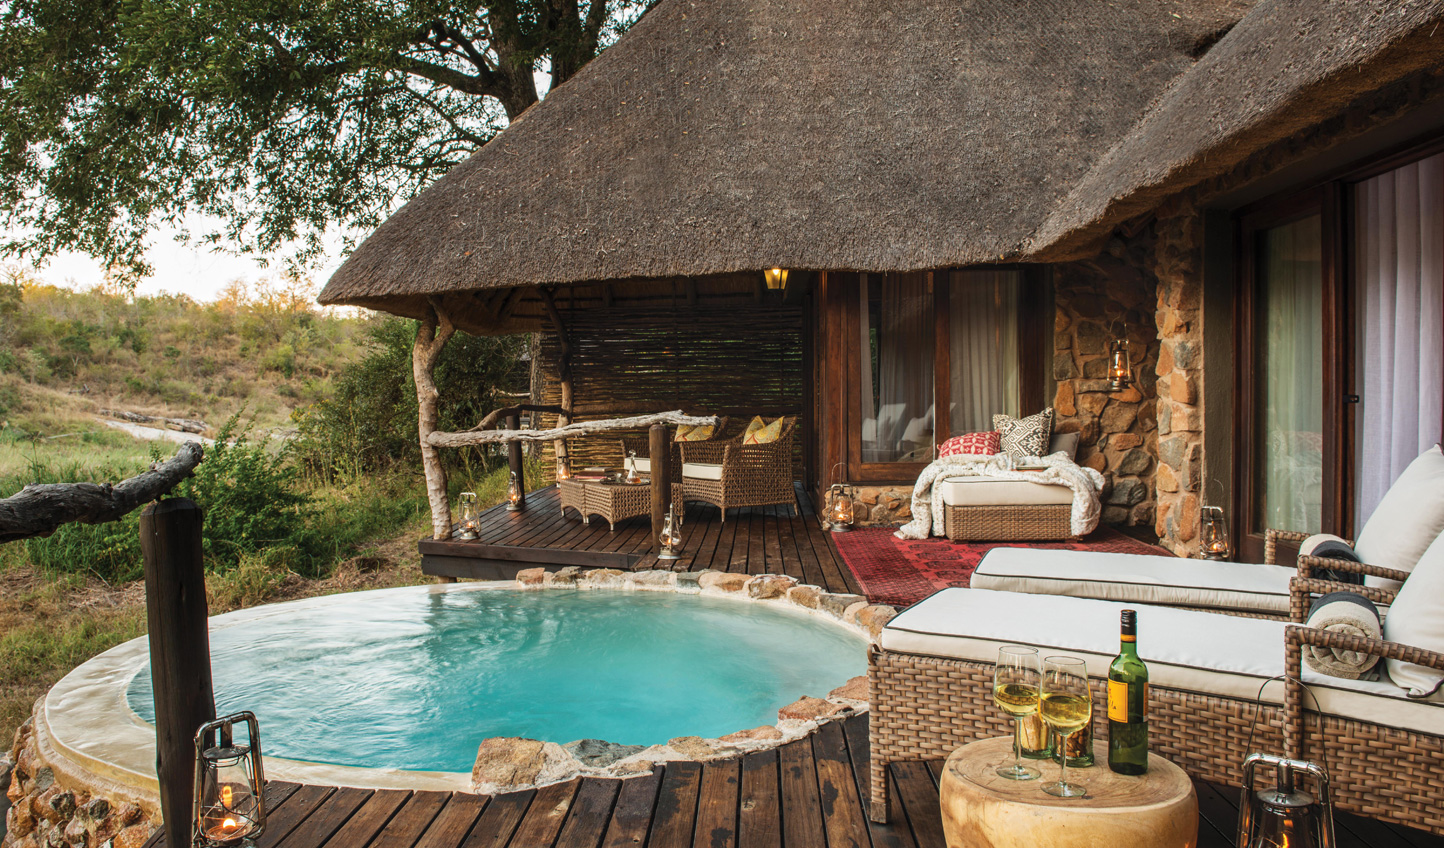 Take a dip in your private plunge pool after a morning safari